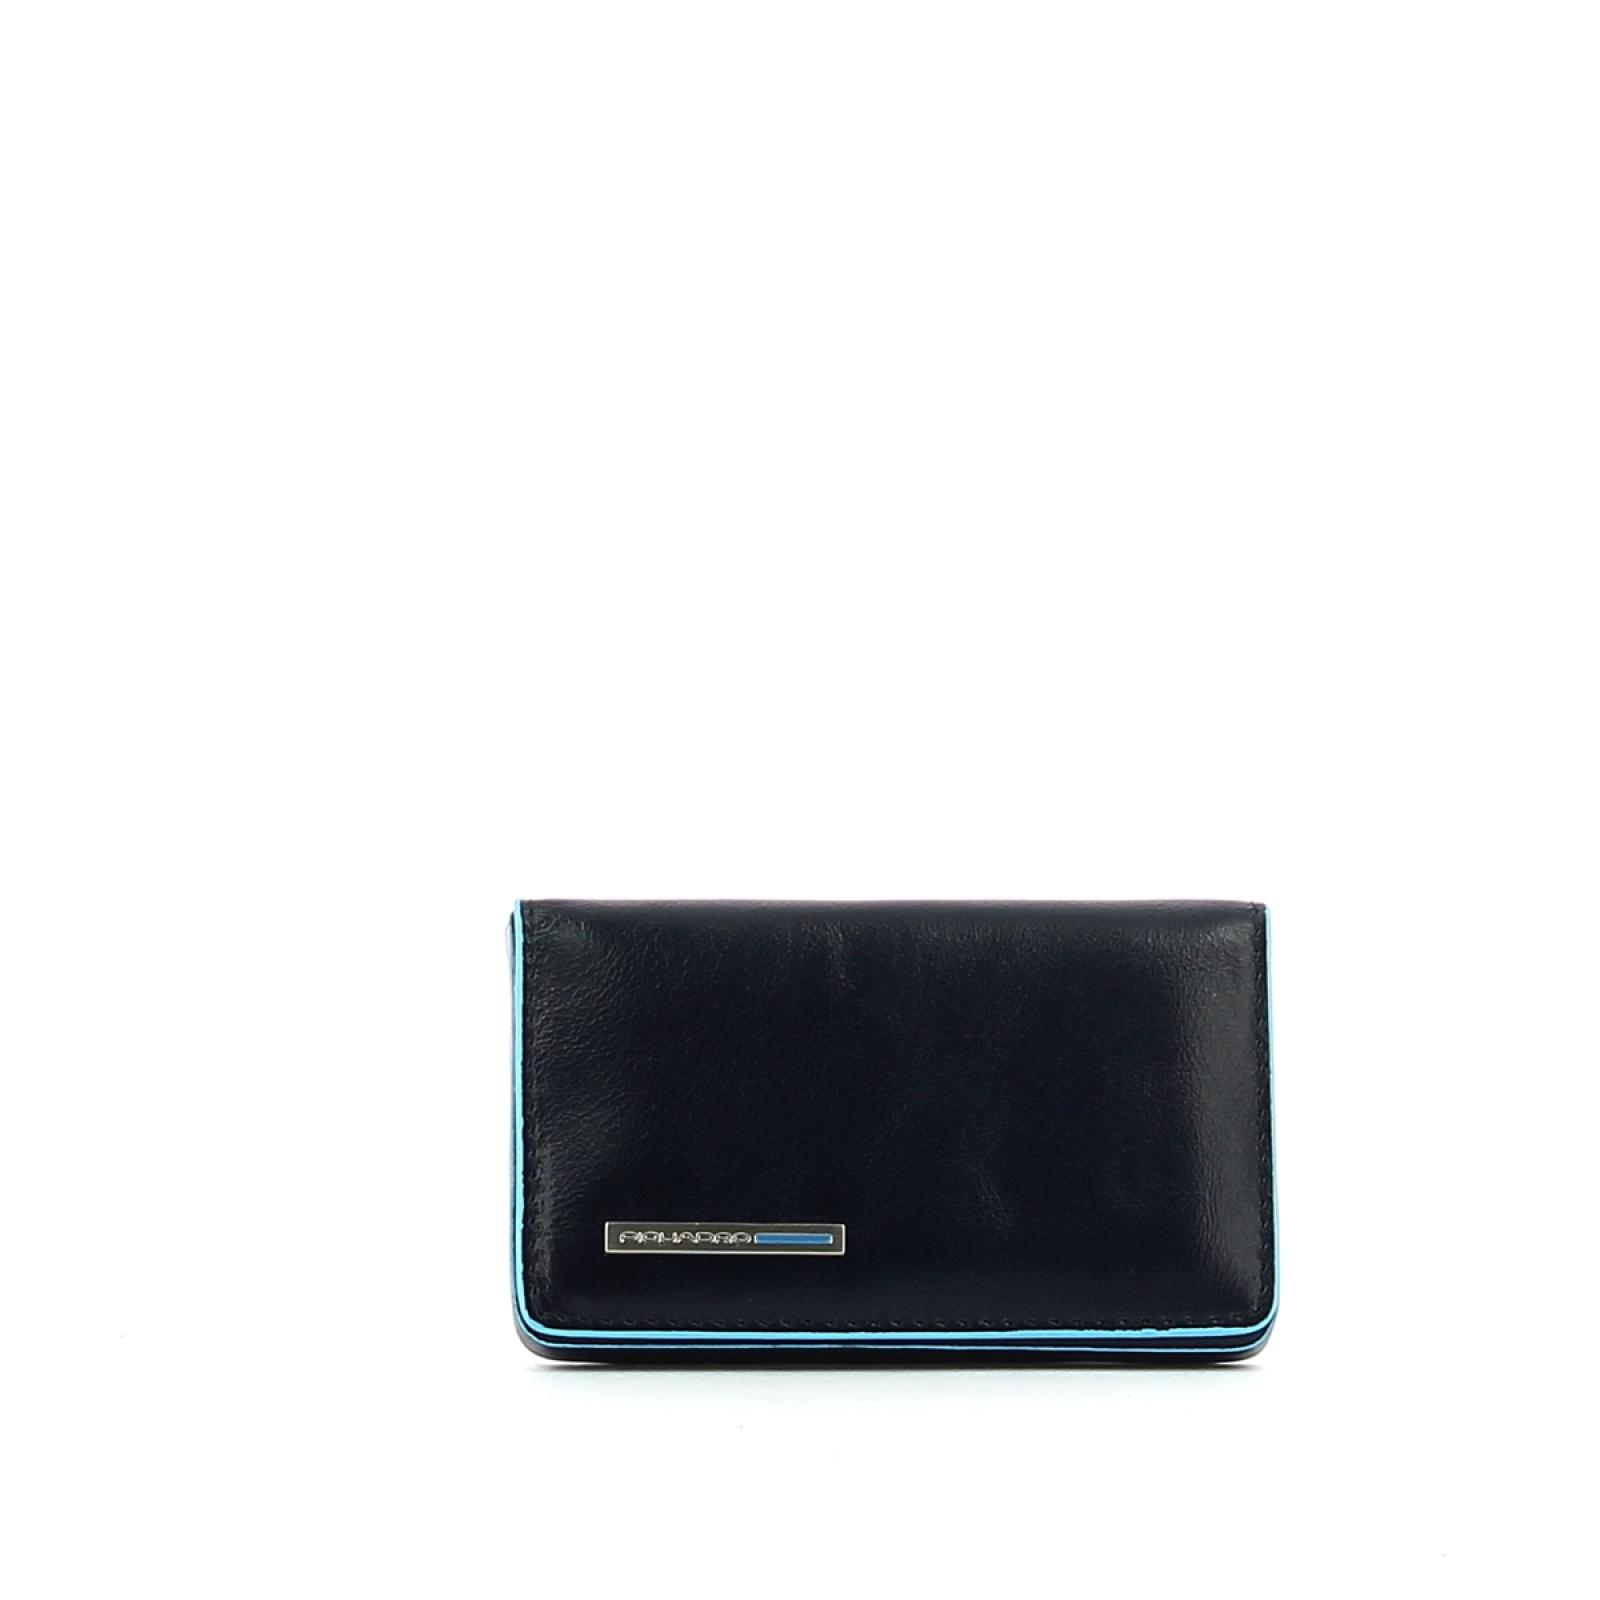 Business card holder Blue Square-BLU2-UN